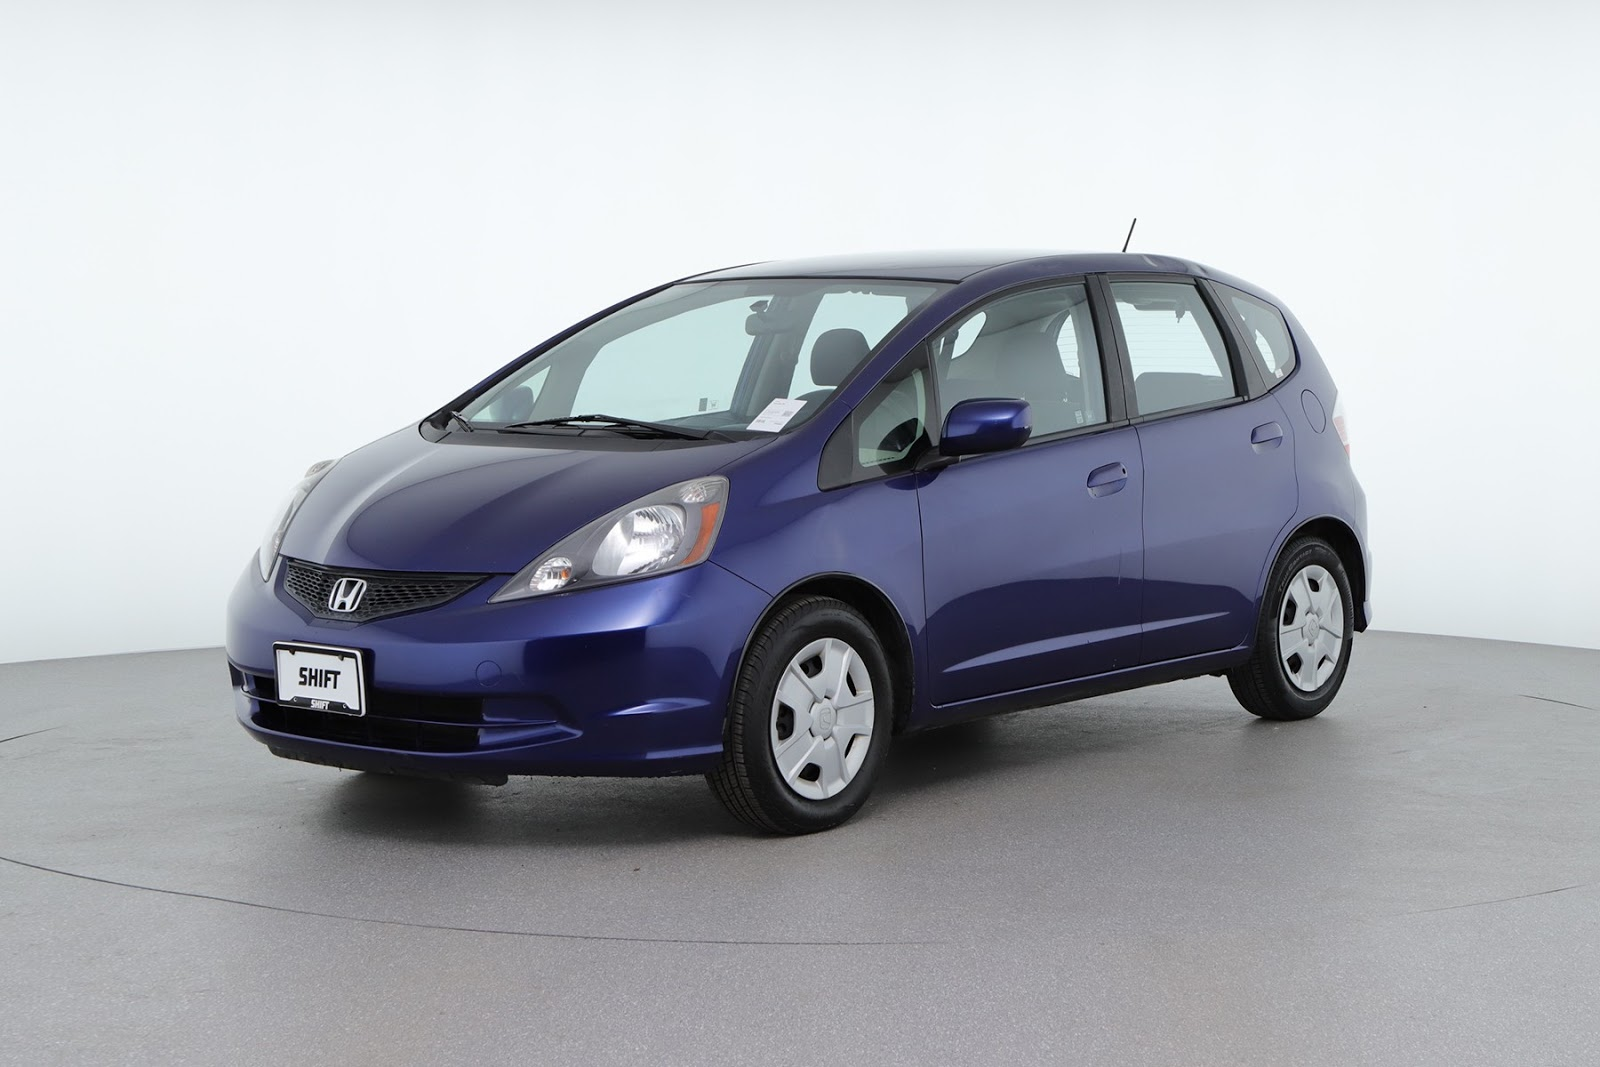 2013 Honda Fit (from $7,950)